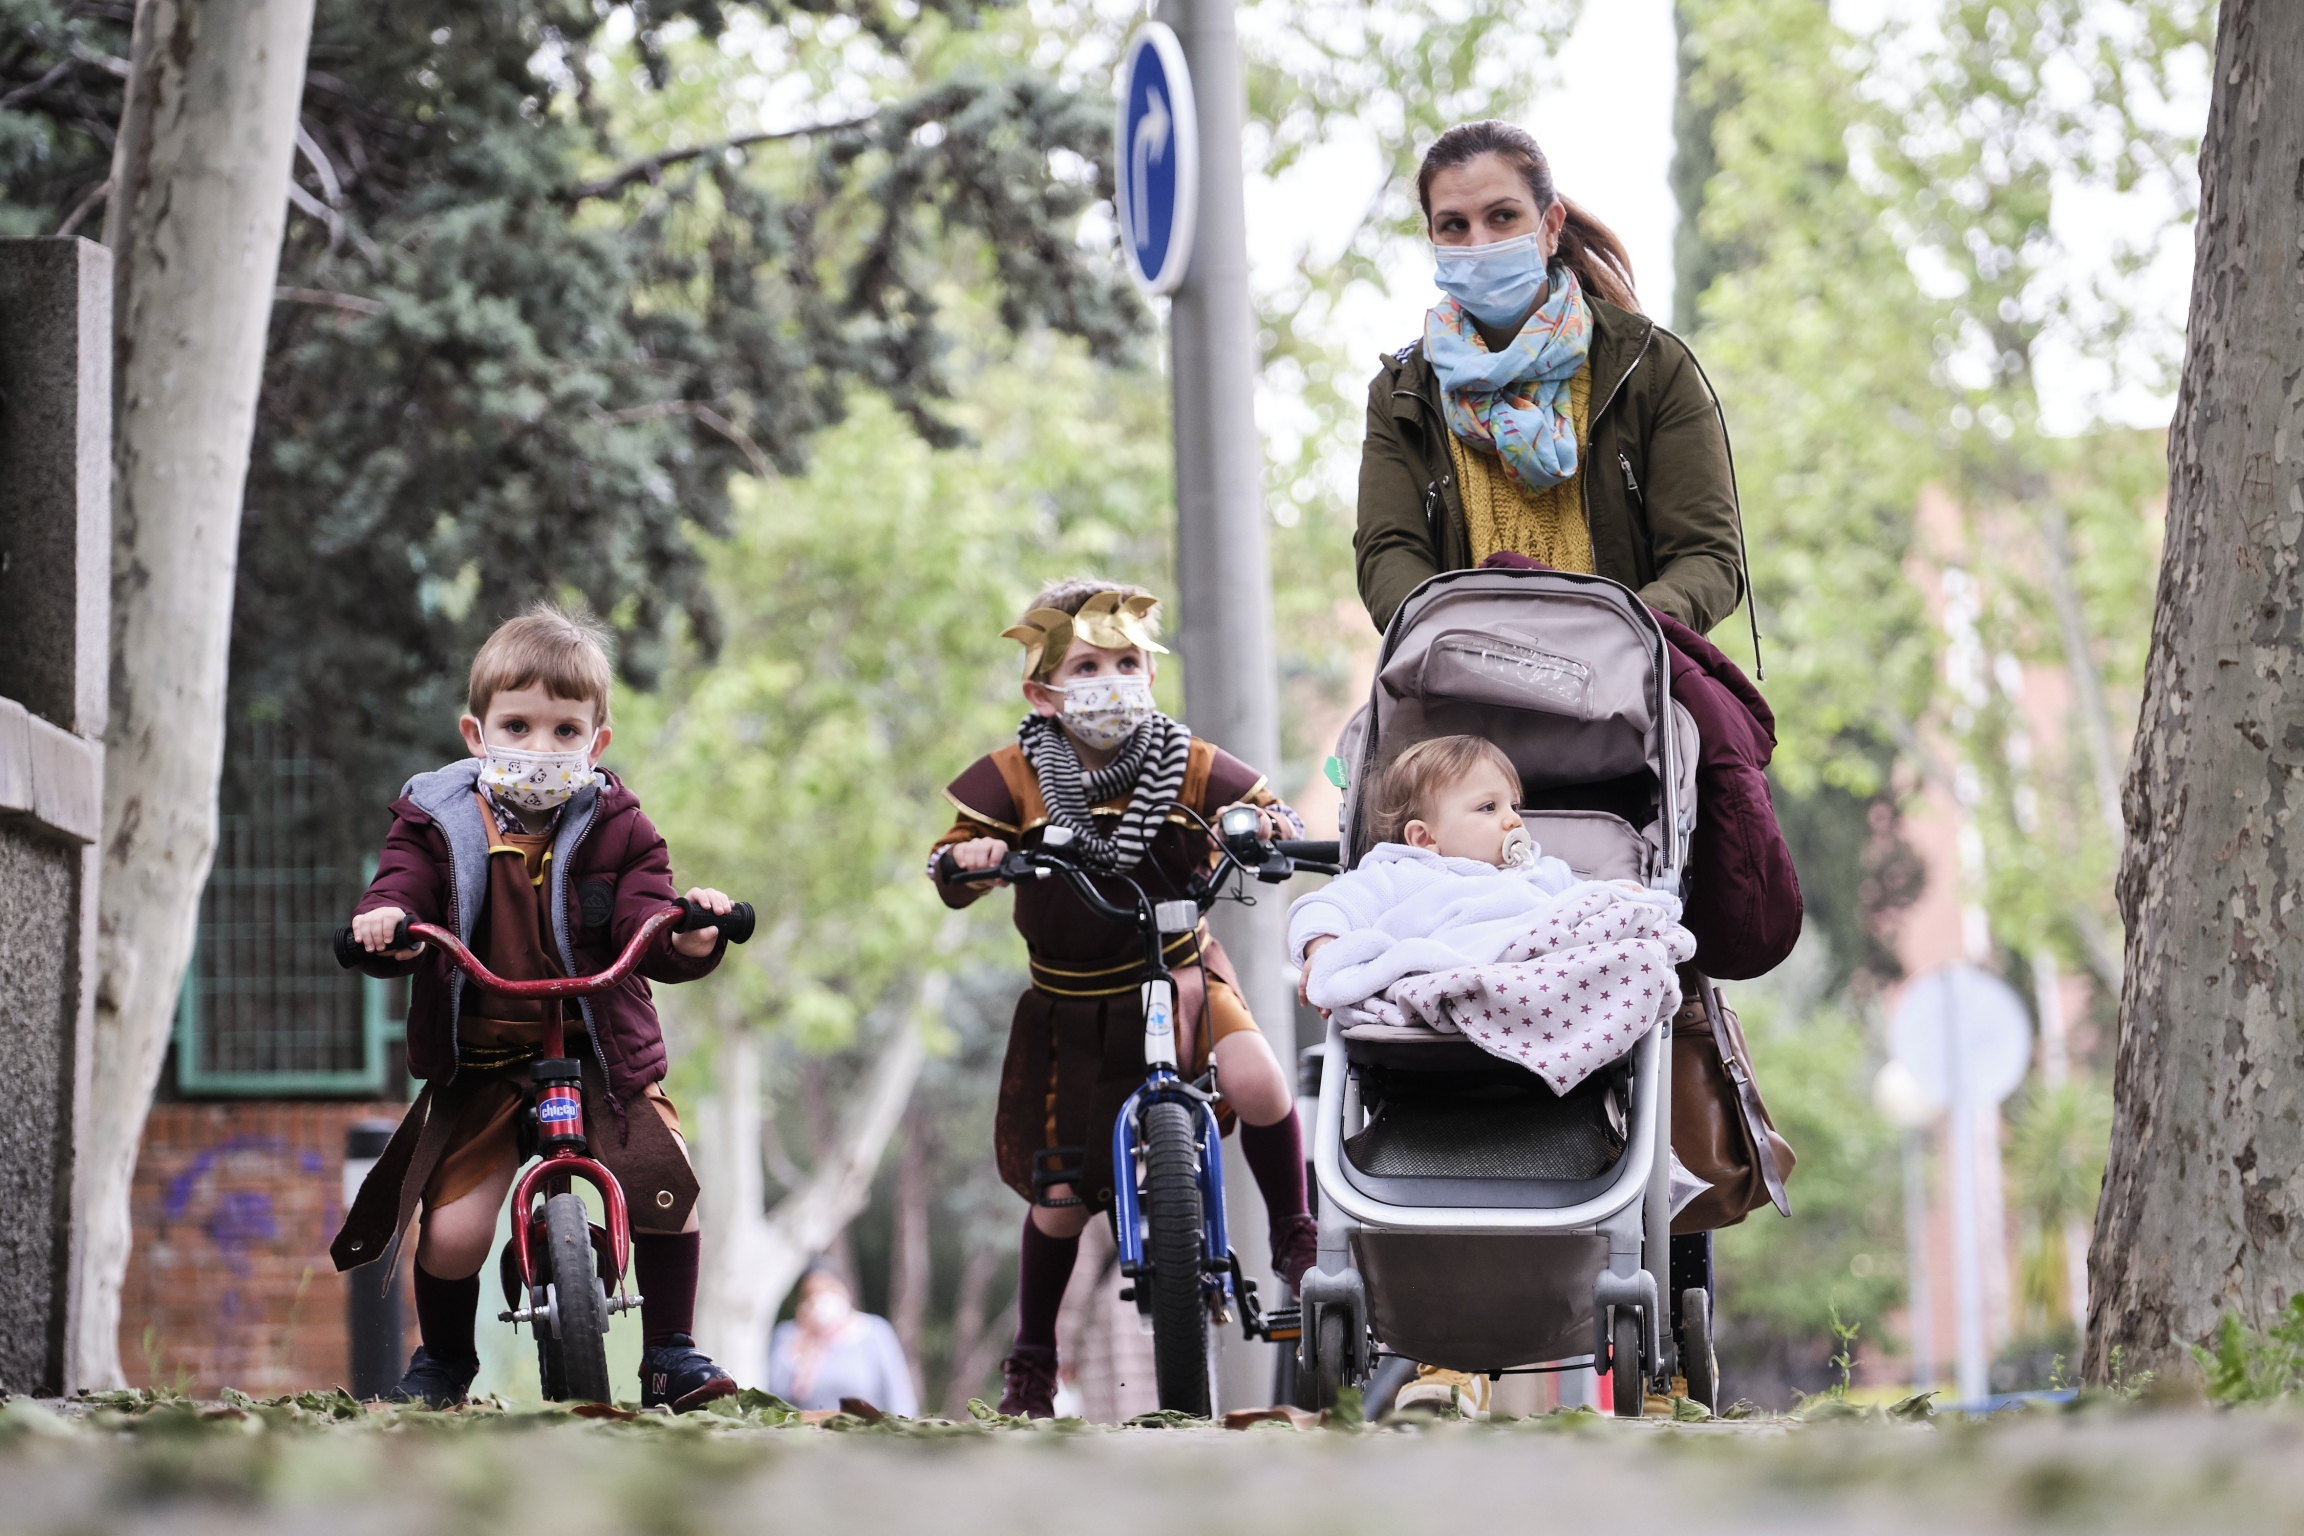 Begoña, a mother of three, takes her children for a walk on the day Spain lifts restrictions on children outdoors due to the coronavirus pandemic